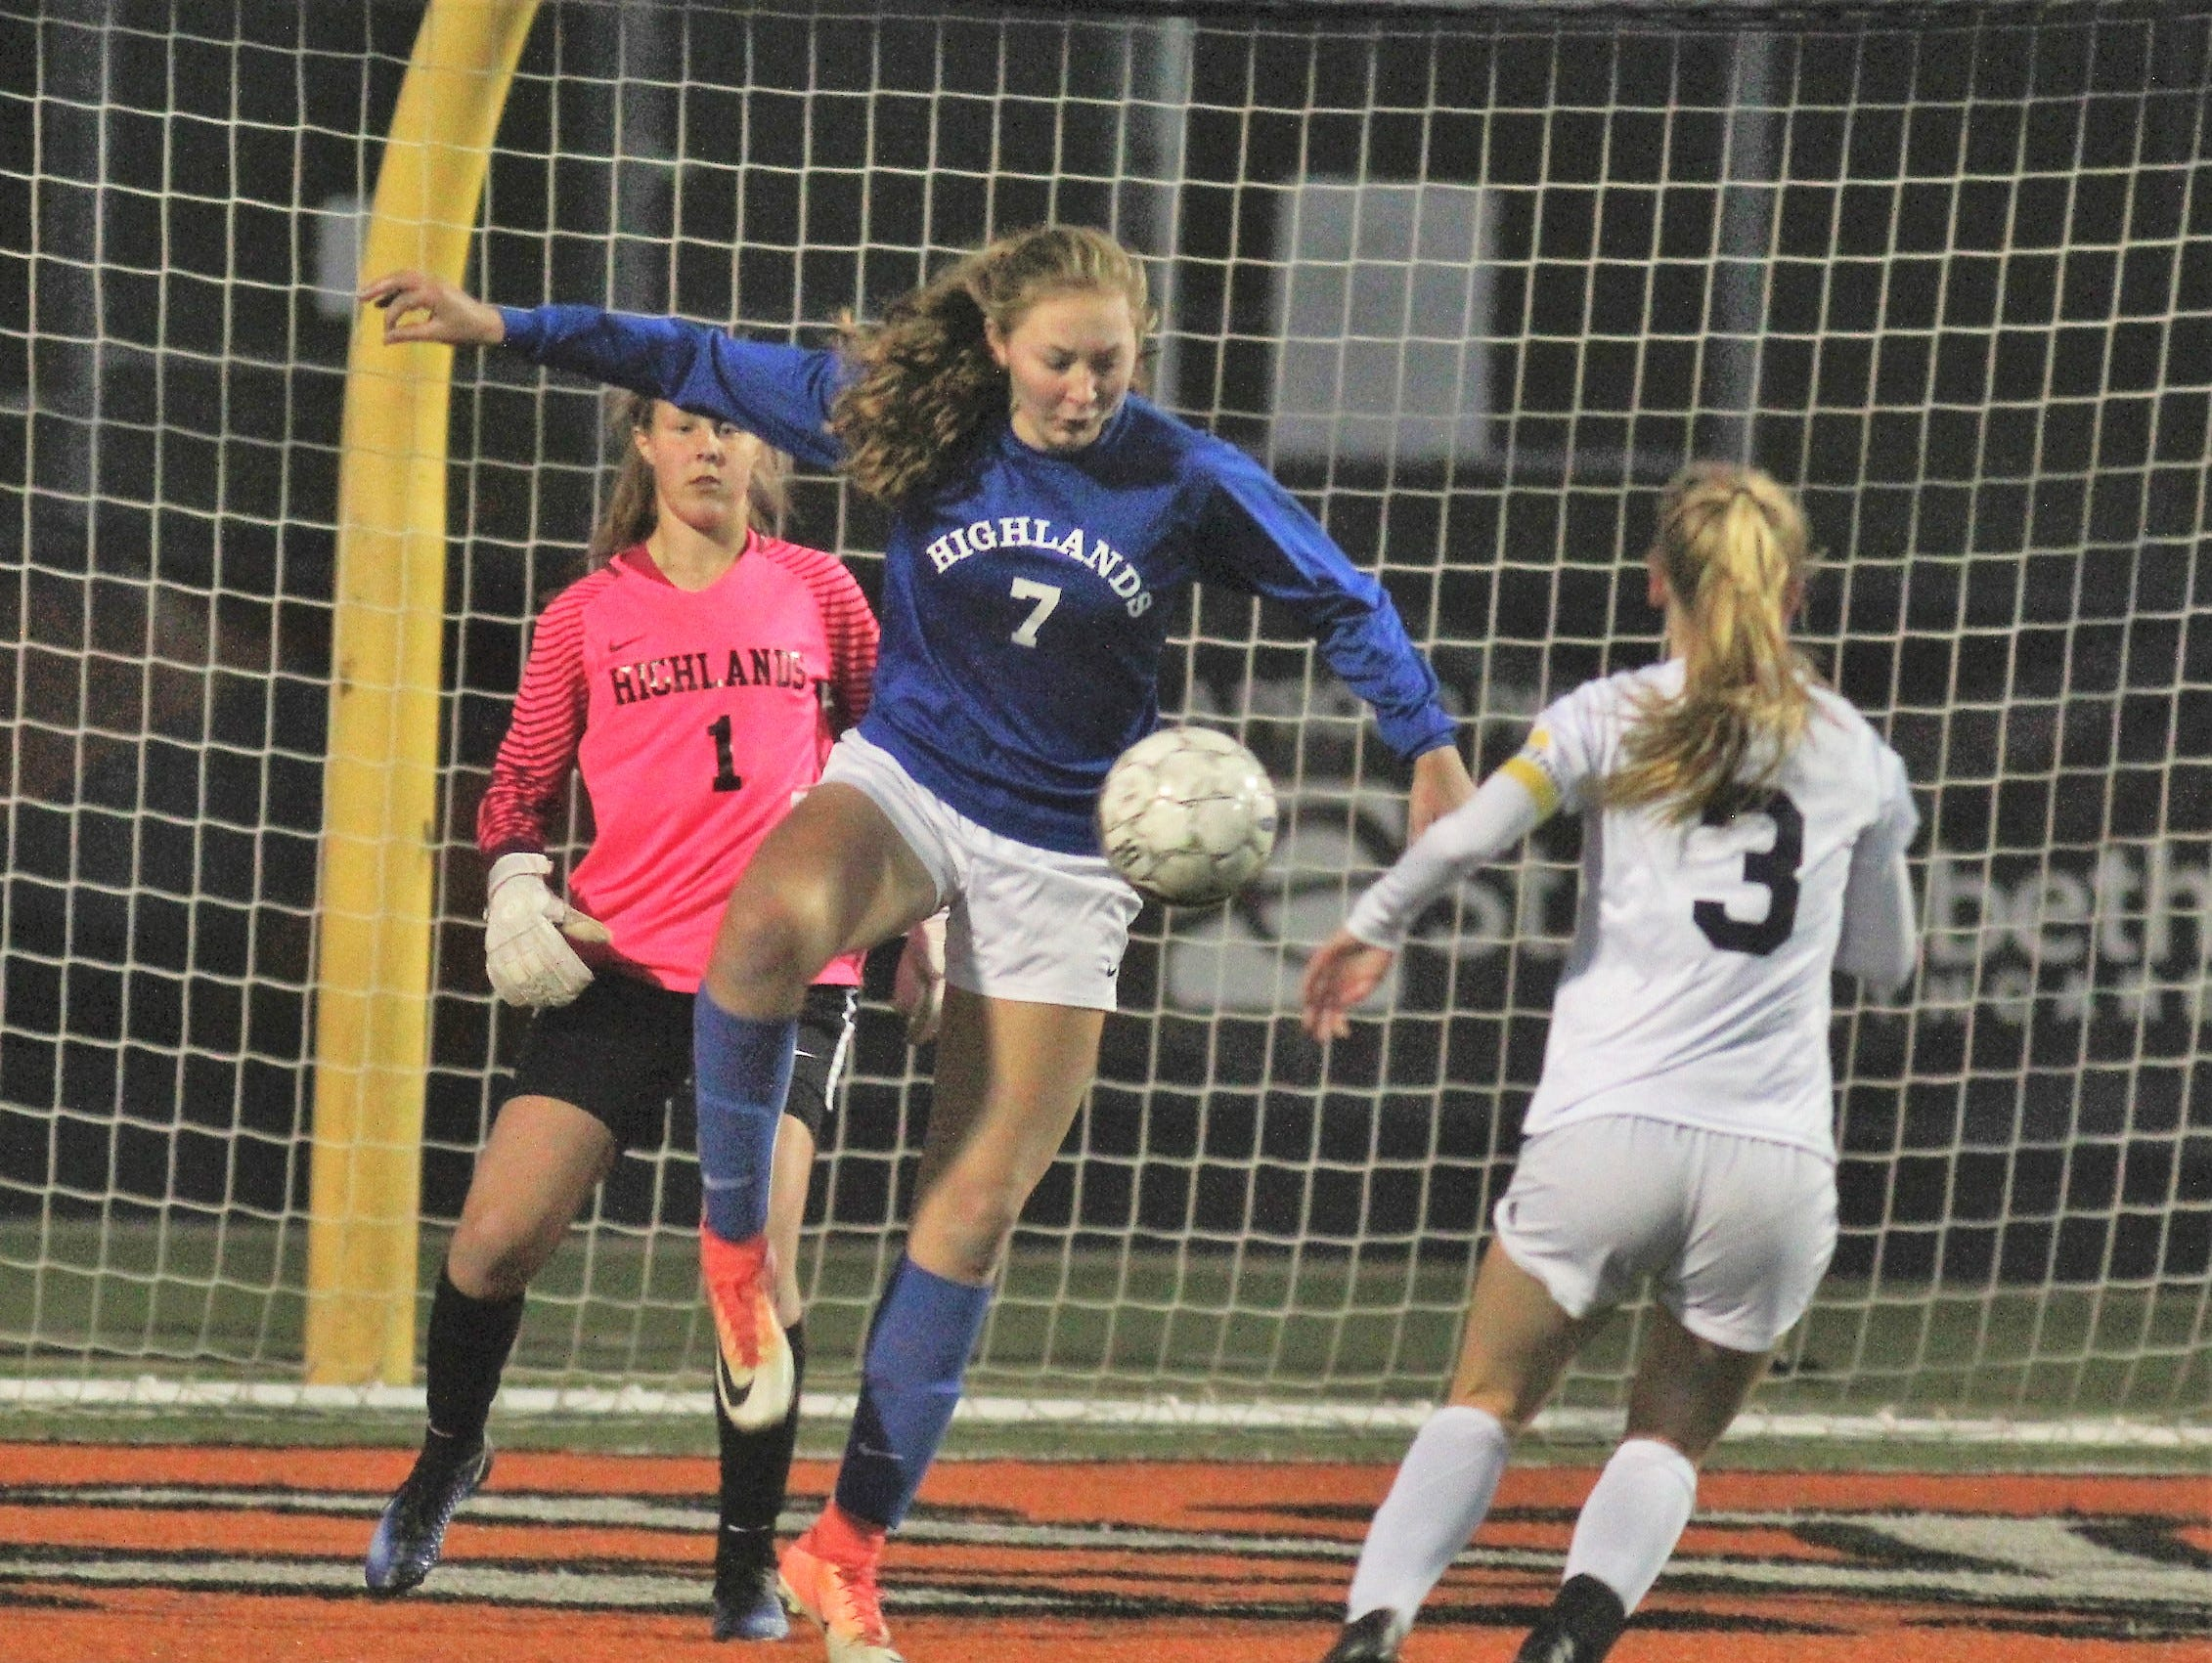 Highlands sophomore Lauren Deckert clears the ball out of trouble during Highlands' 1-0 win over Notre Dame in the 9th Region girls soccer championship game Oct. 18, 2018 at Ryle High School, Union, Ky.